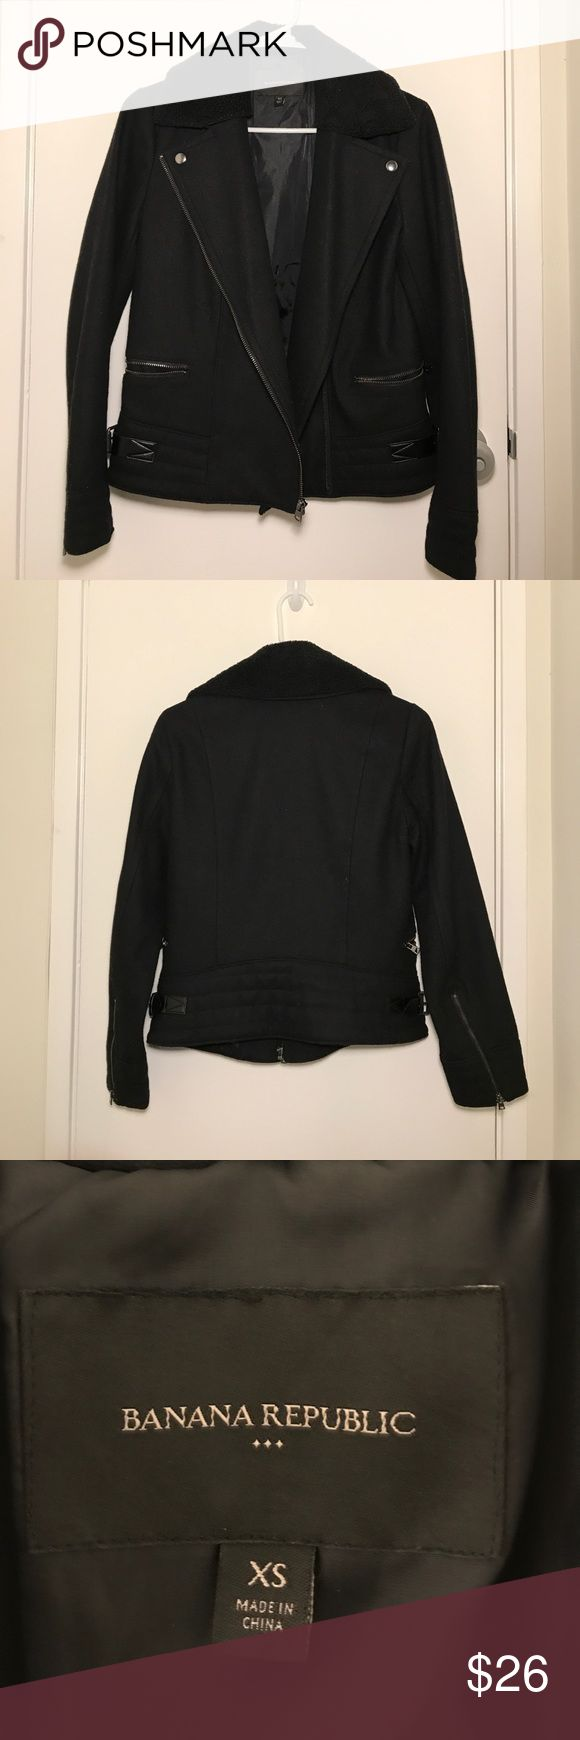 Banana Republic wool blend moto jacket Banana Republic wool blend moto zip jacket in black, size XS. Zipper and belt detail. Fully lined. Removable sherpa collar. Excellent condition, worn only twice. Banana Republic Jackets & Coats